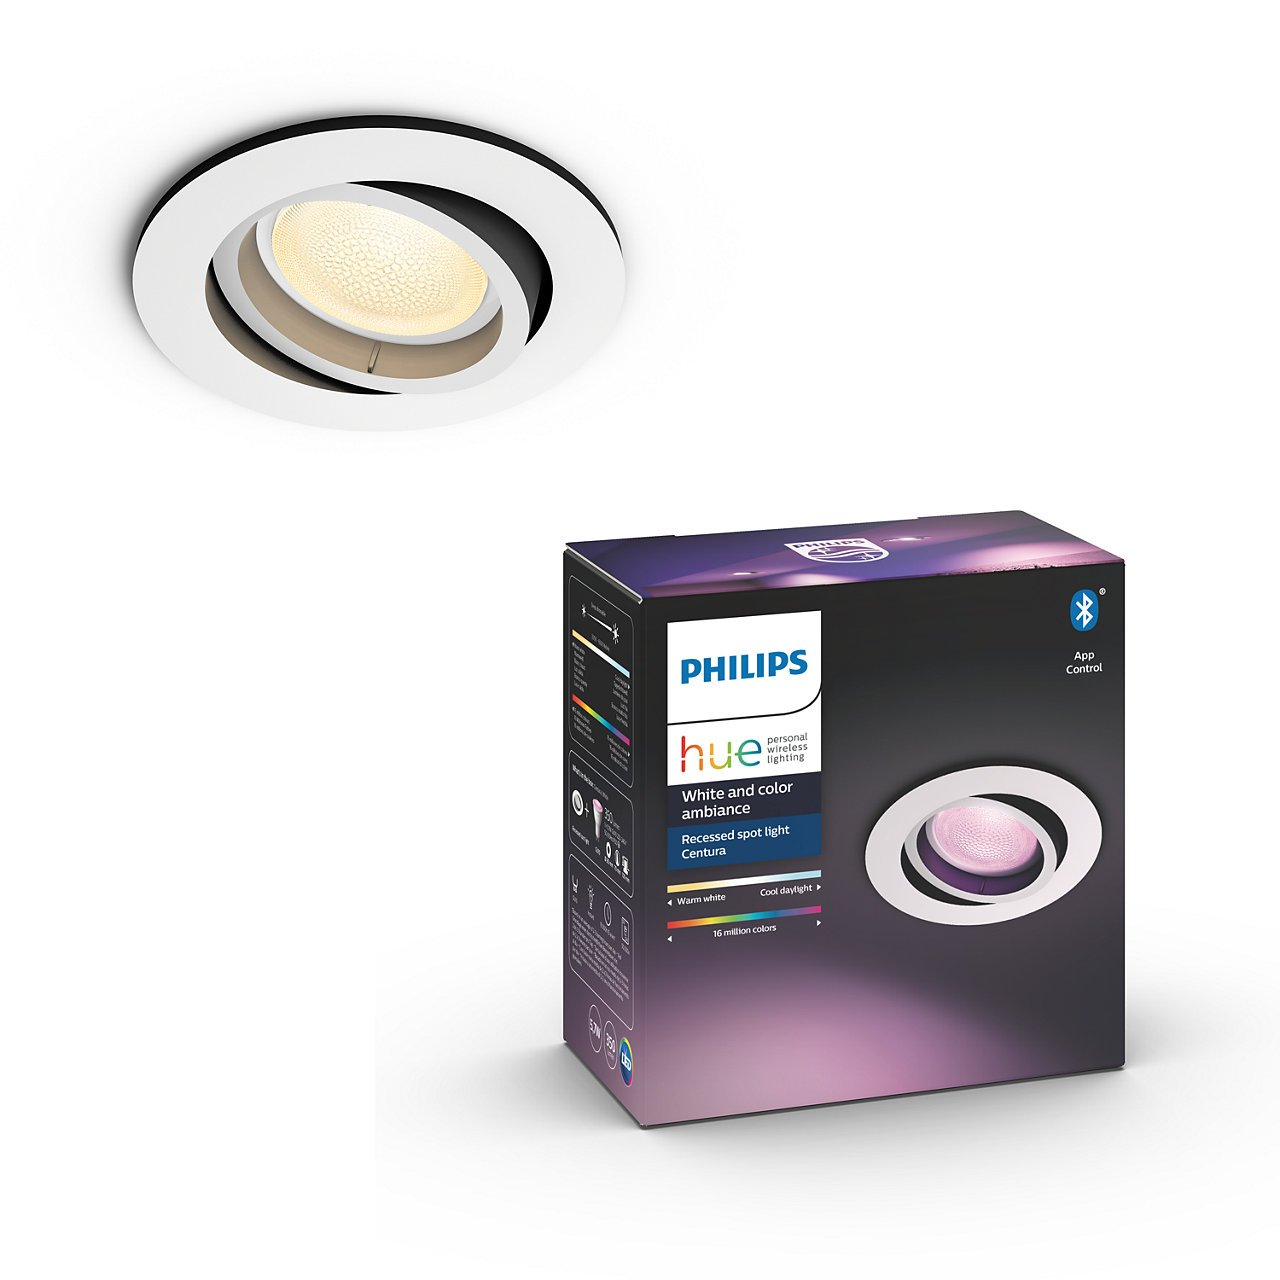 Philips Hue - Centura recessed white - Round - White & Color Ambiance